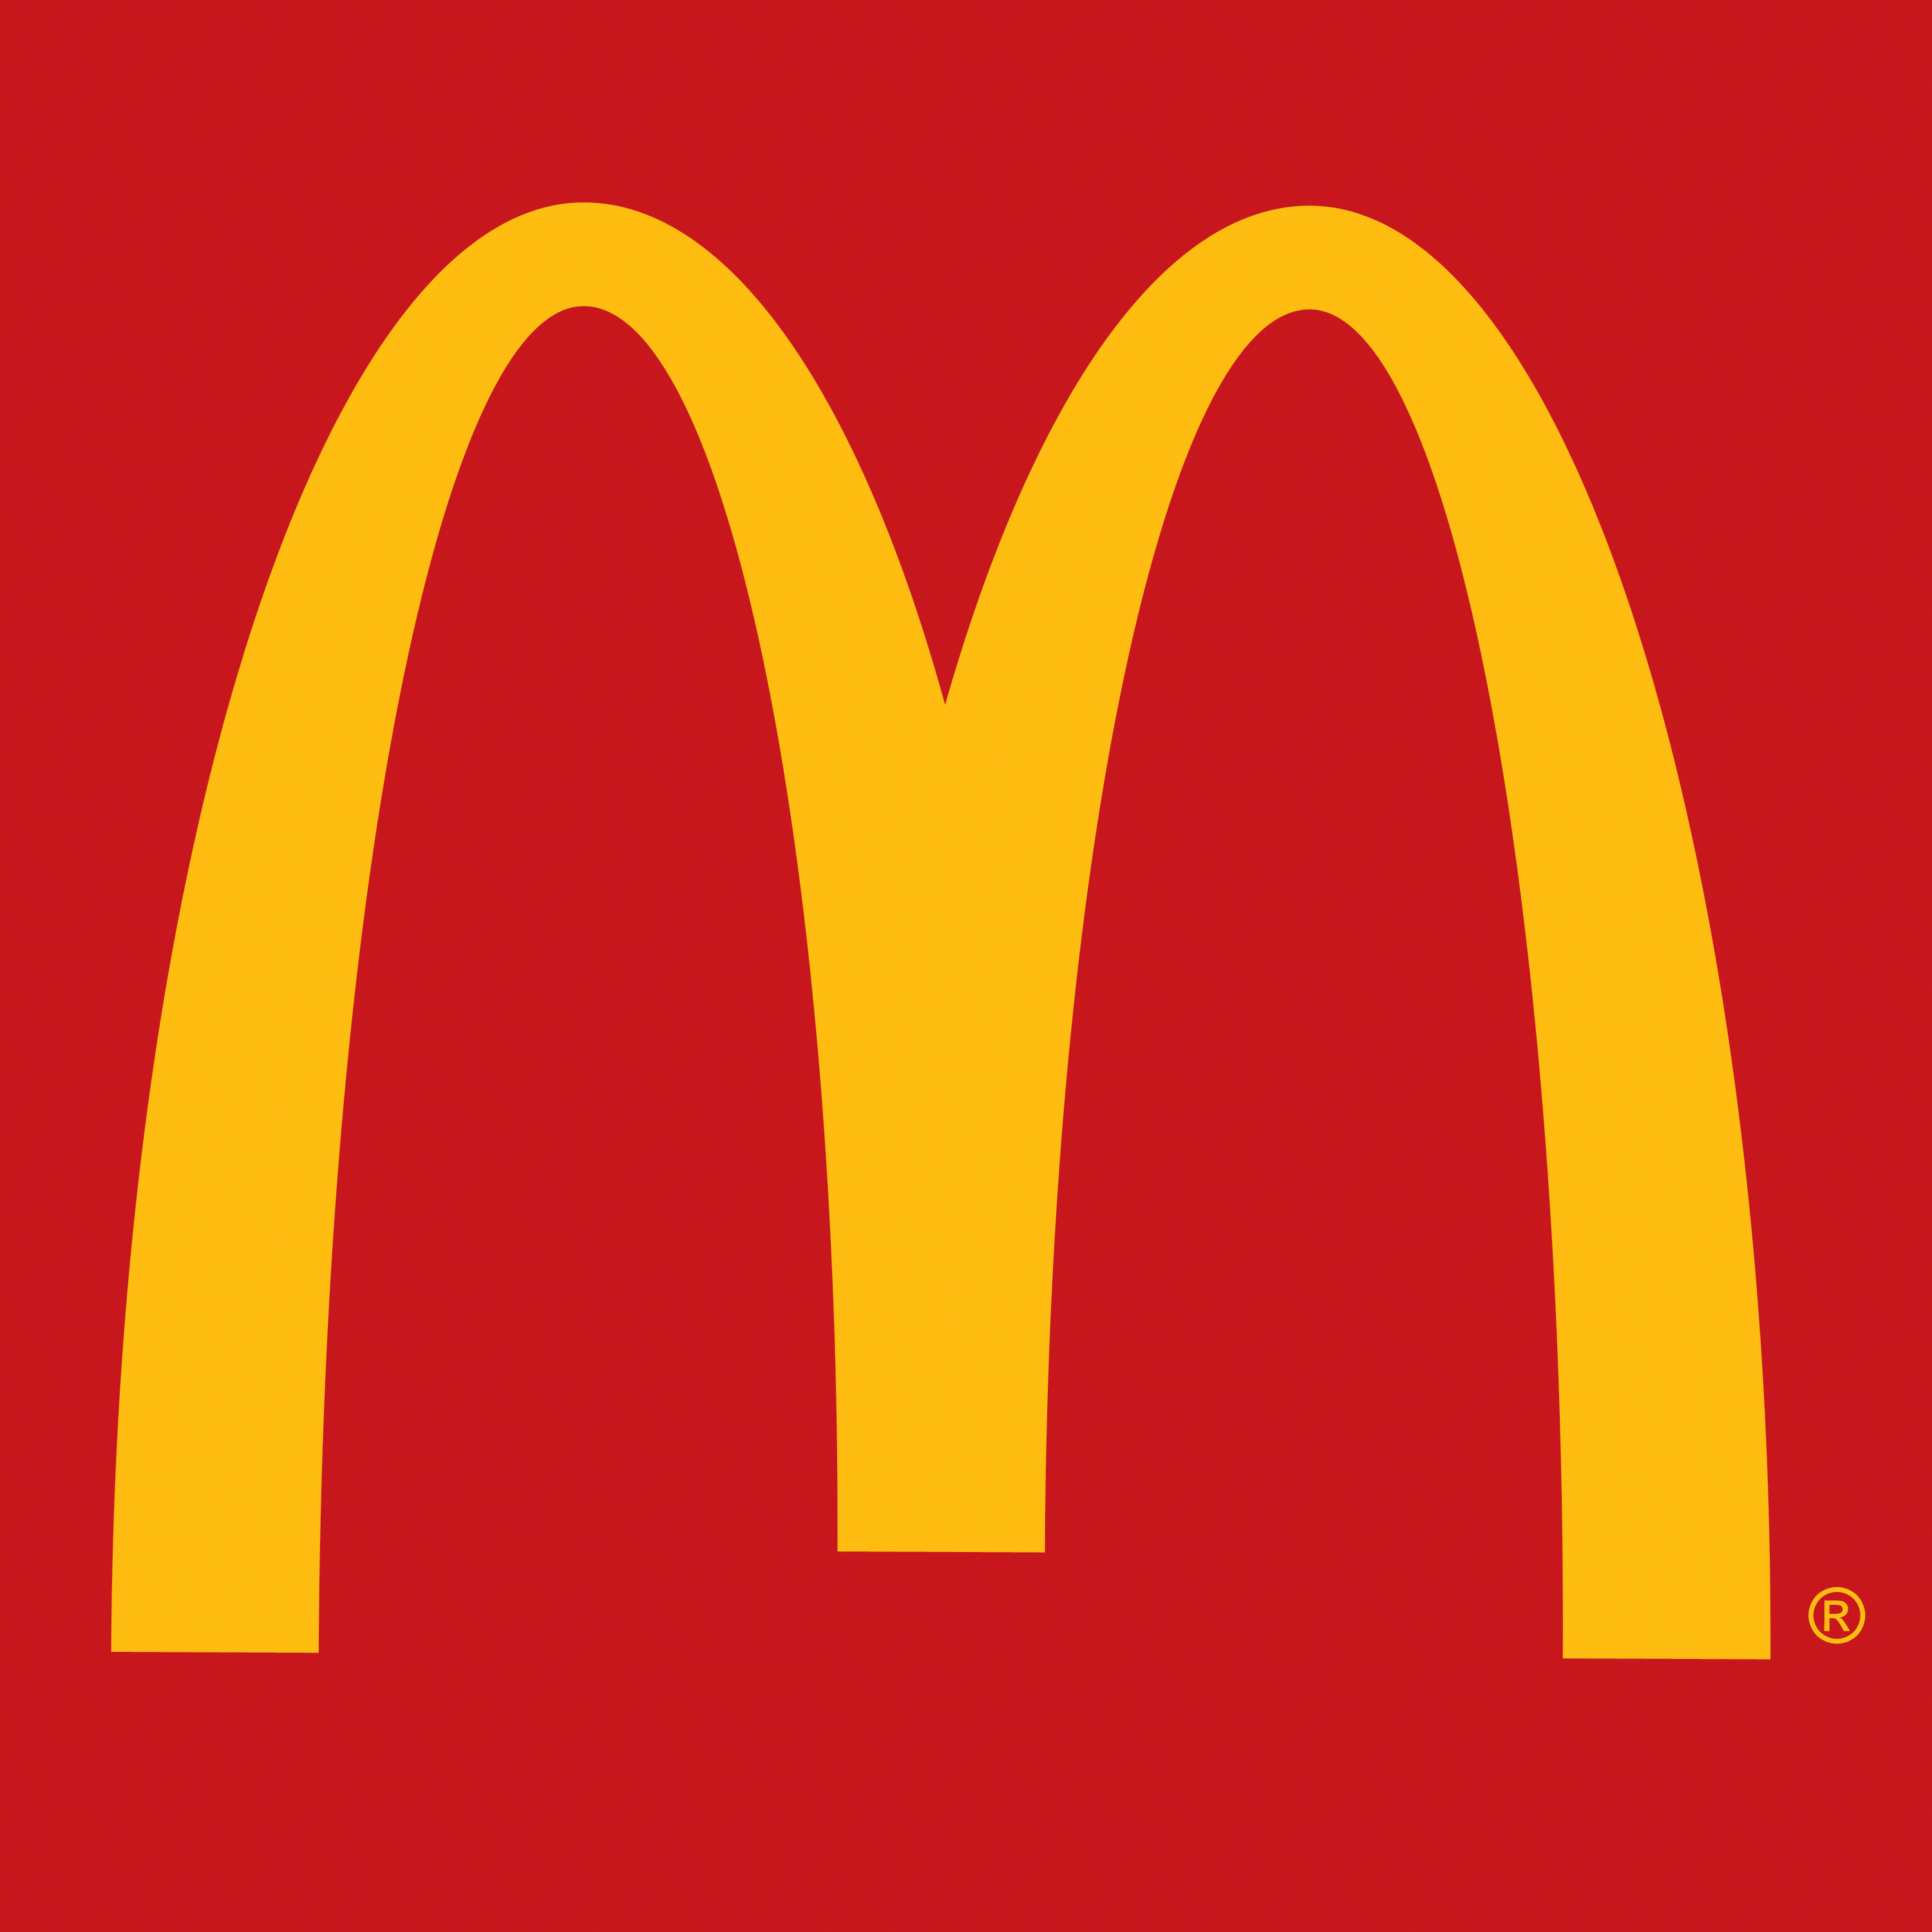 ... McDonald's Summer Specials, visit the nearest McDonald's today